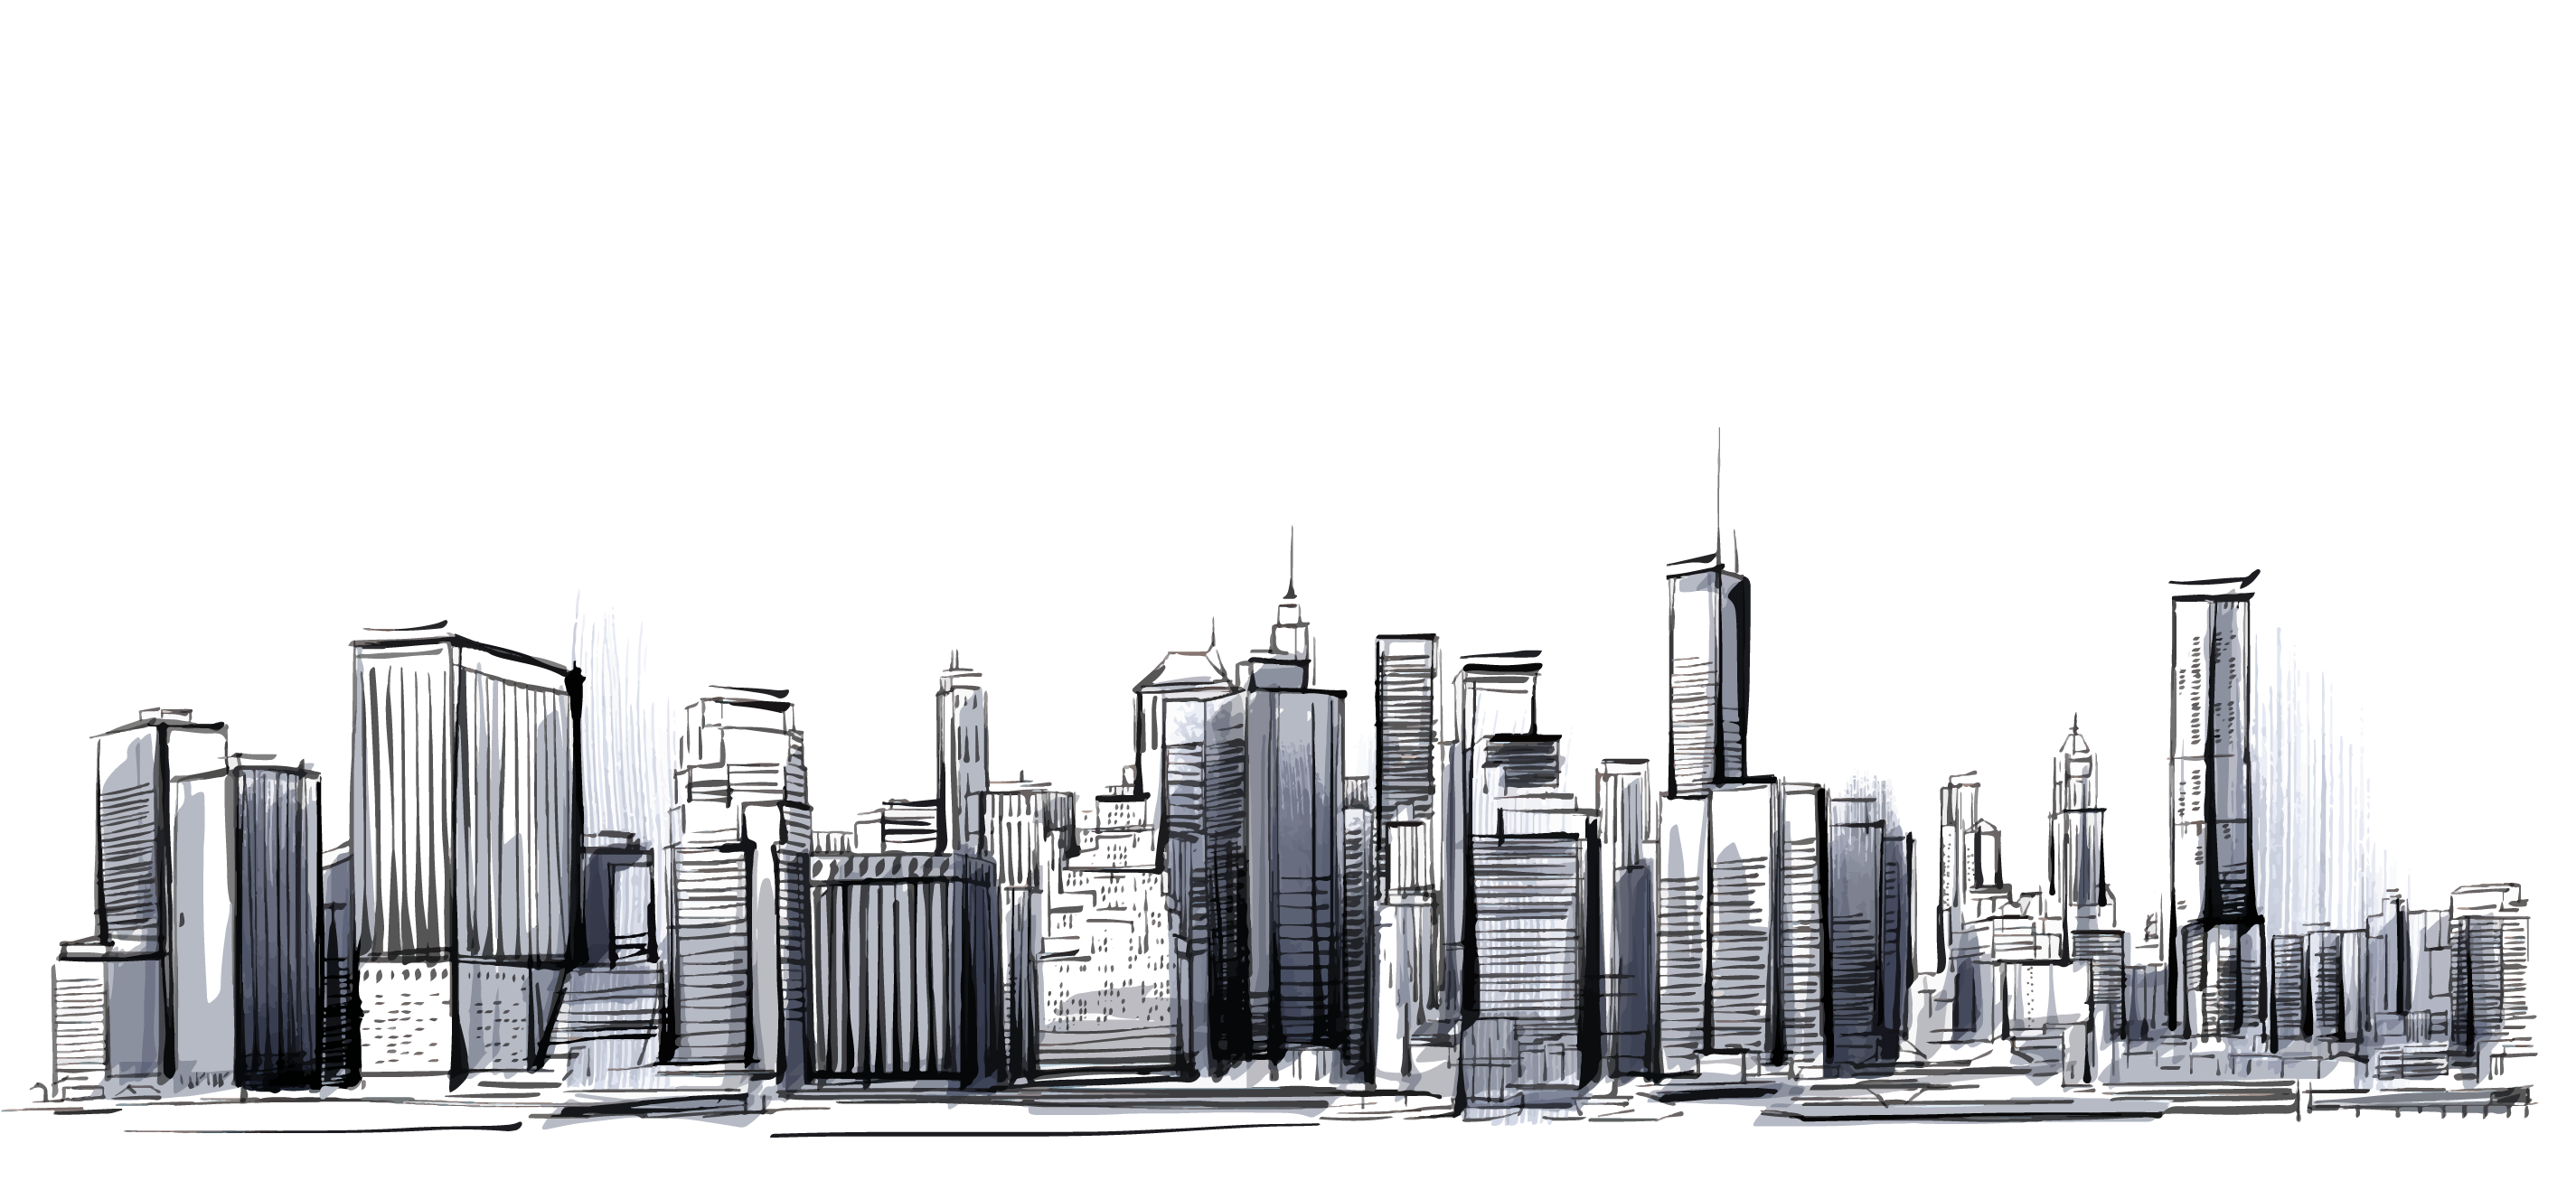 City clipart city landscape. Manhattan cities skylines drawing